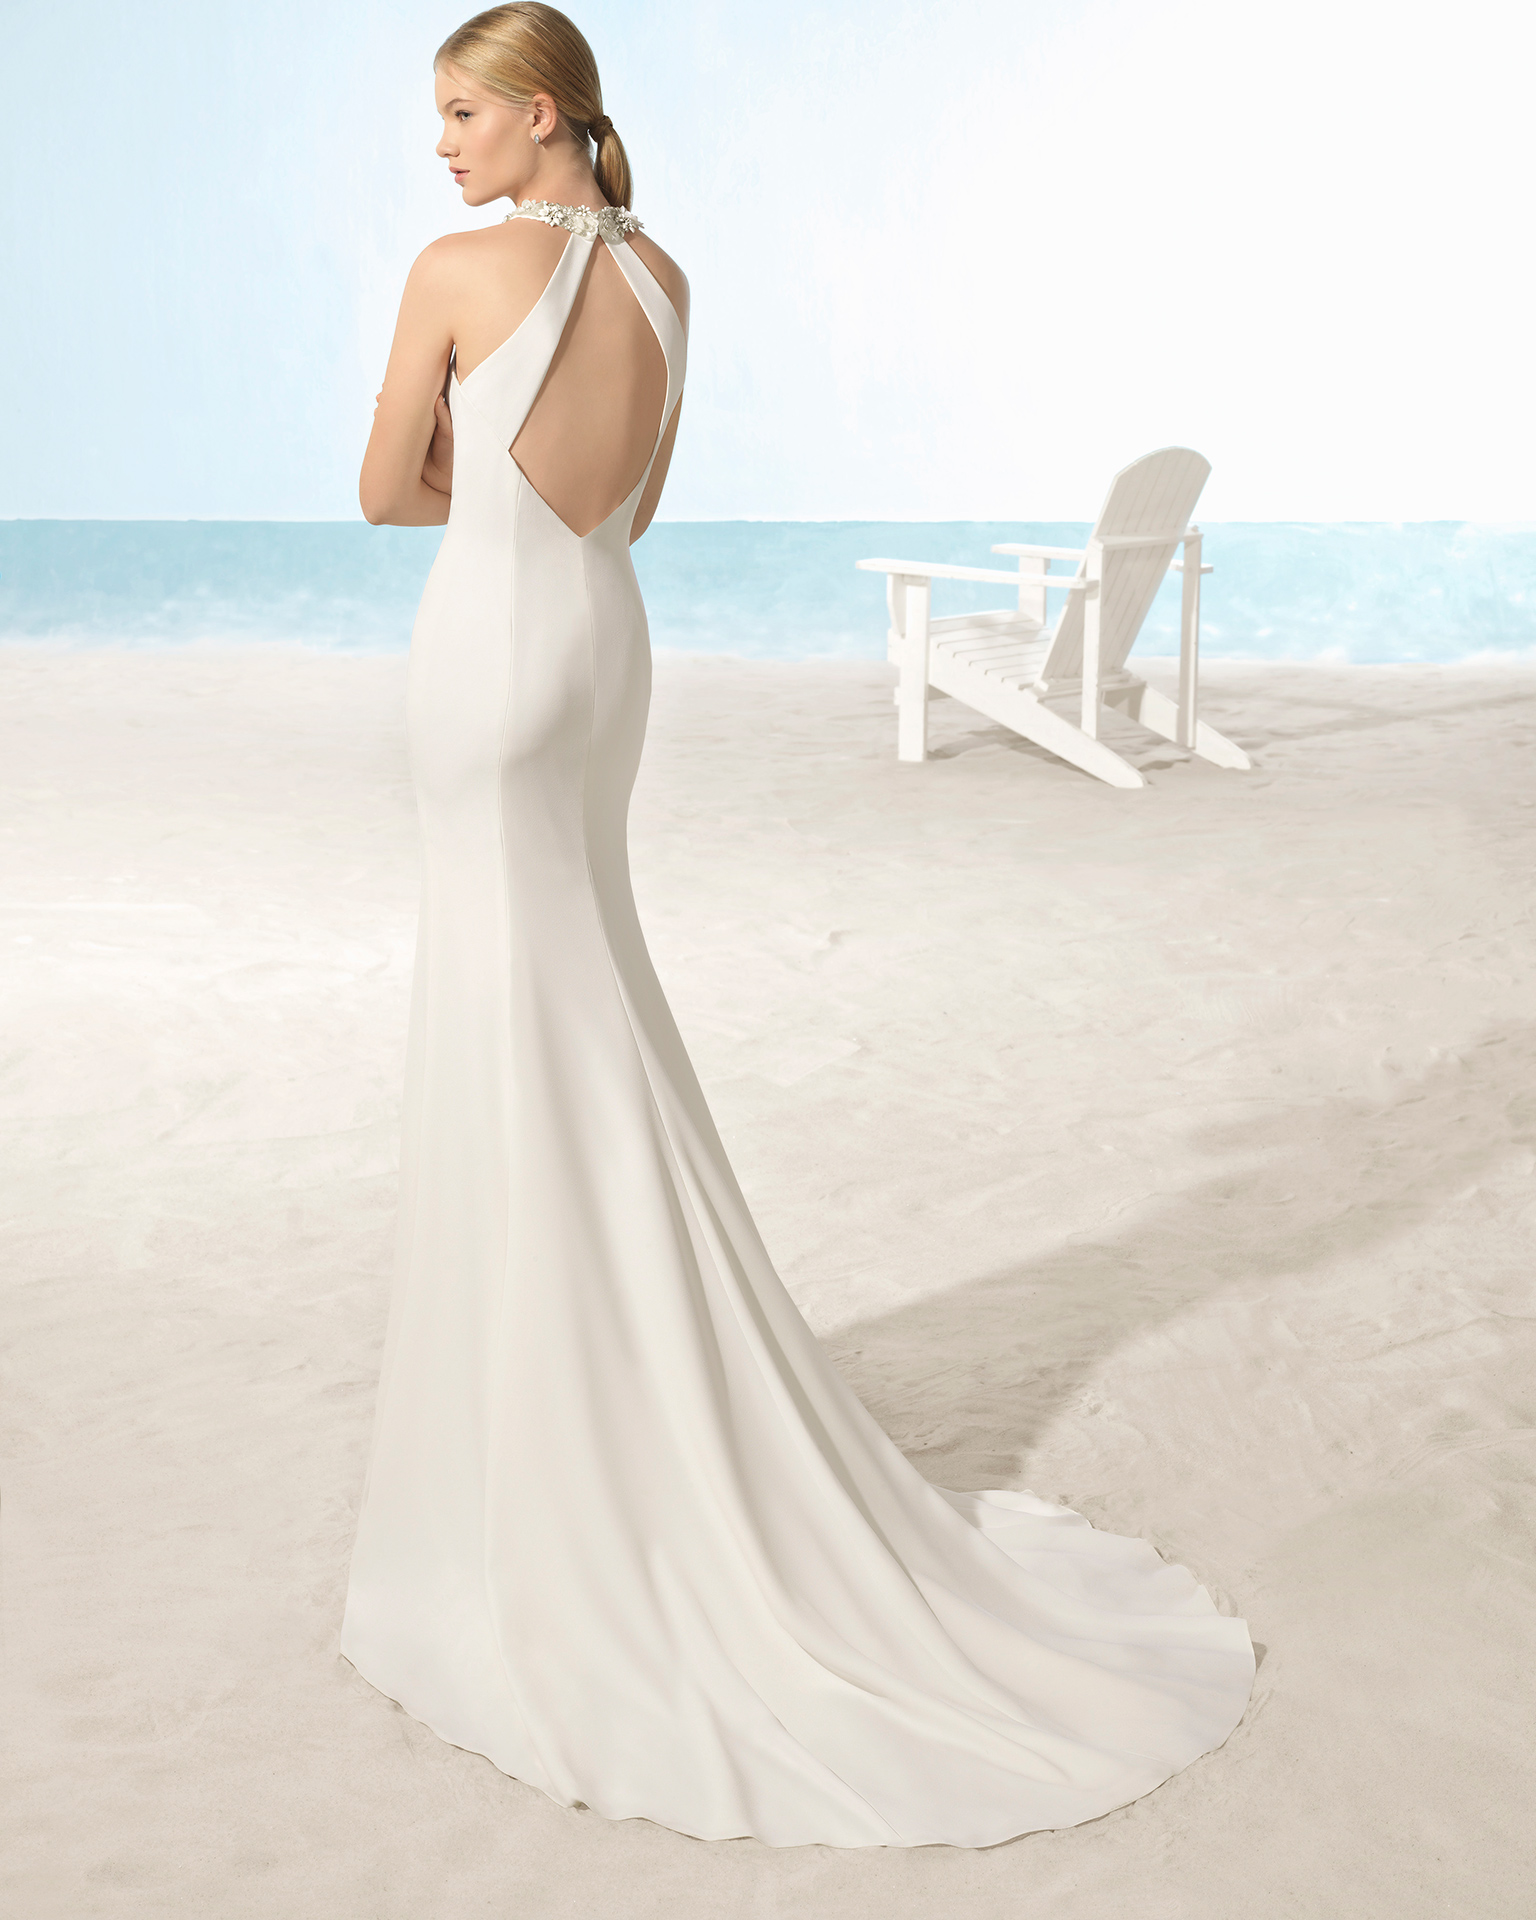 Mermaid-style crepe wedding dress with halter neckline, open back and crystal flowers.